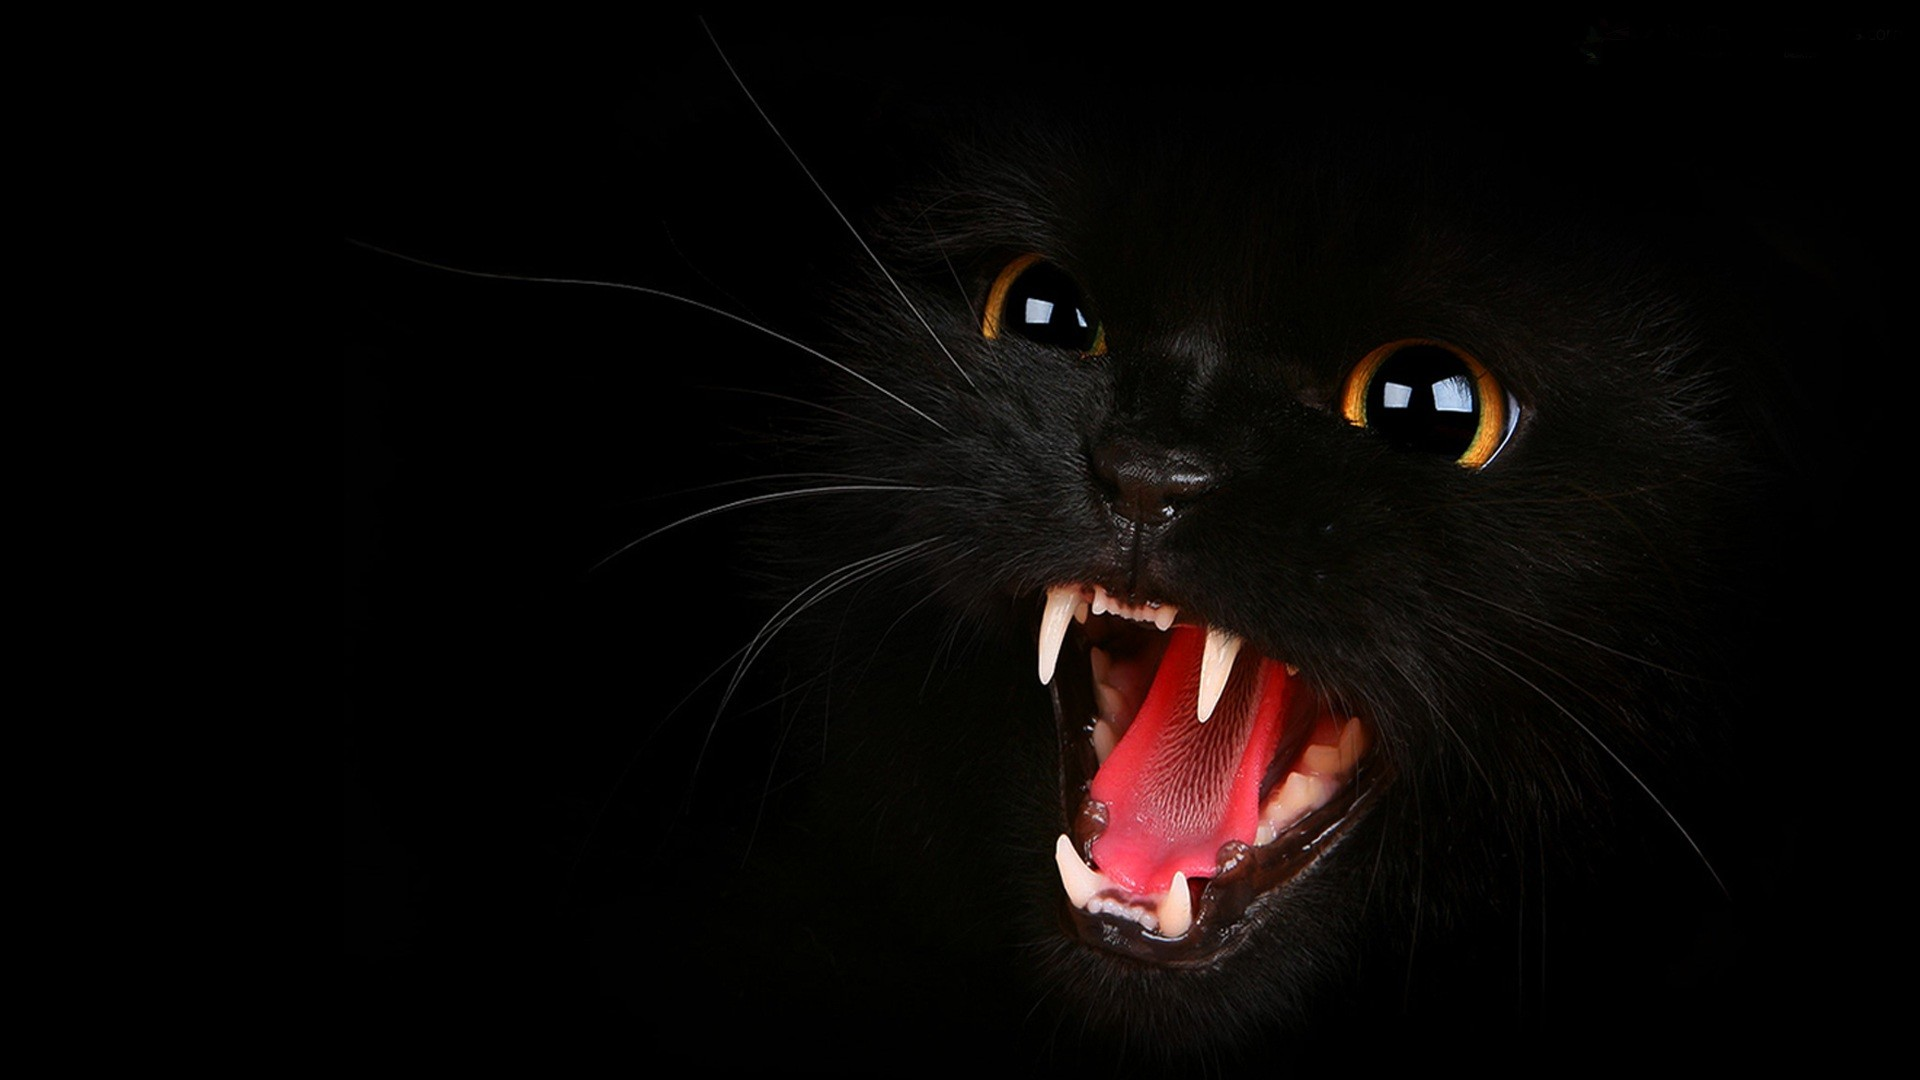 1920x1080 Cat Wallpaper Black And White Download 1920x1200